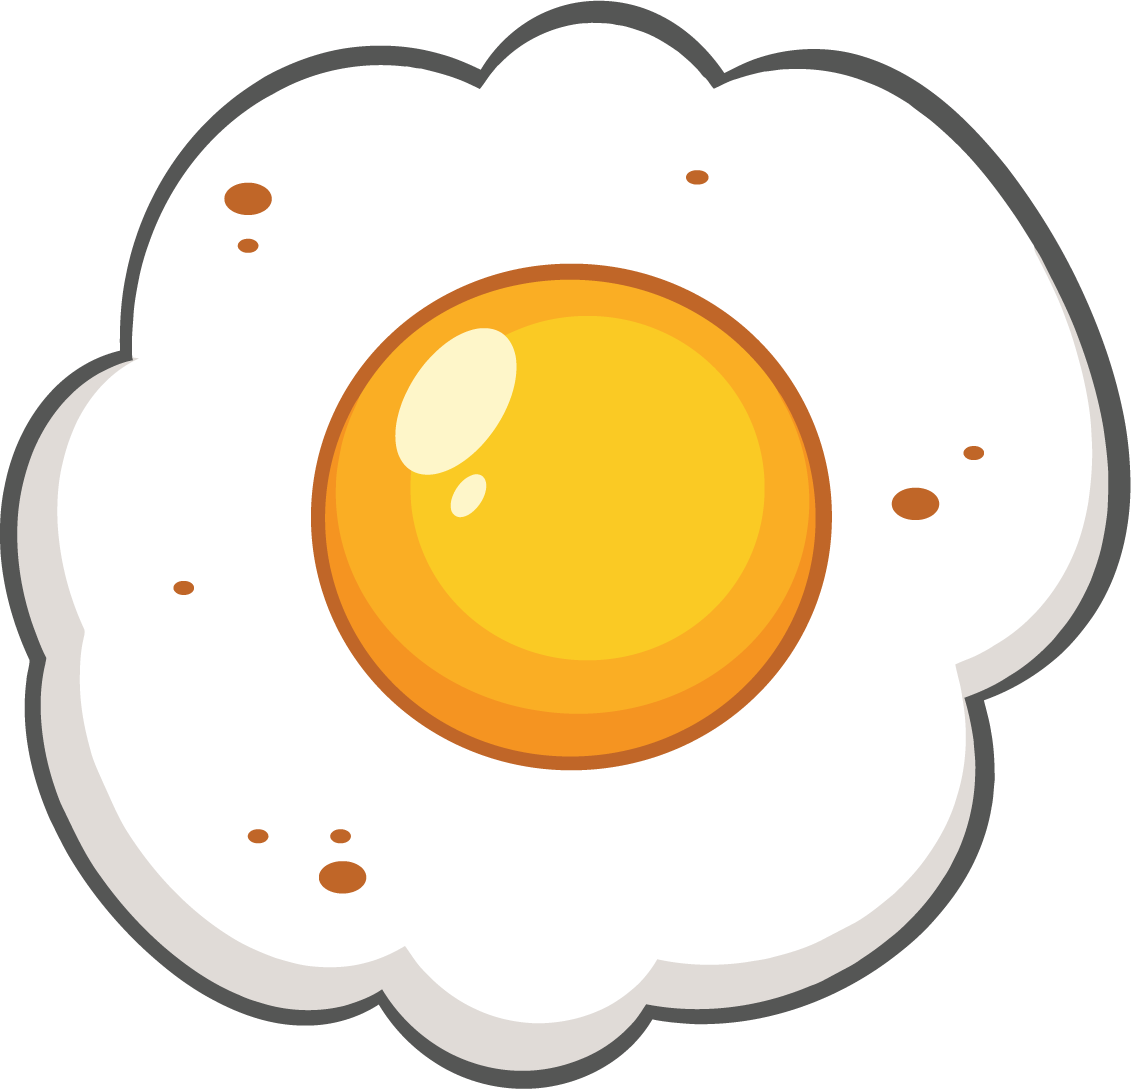 png_illustration-cartoon-egg-vector-illustration-isolated-on-white-background